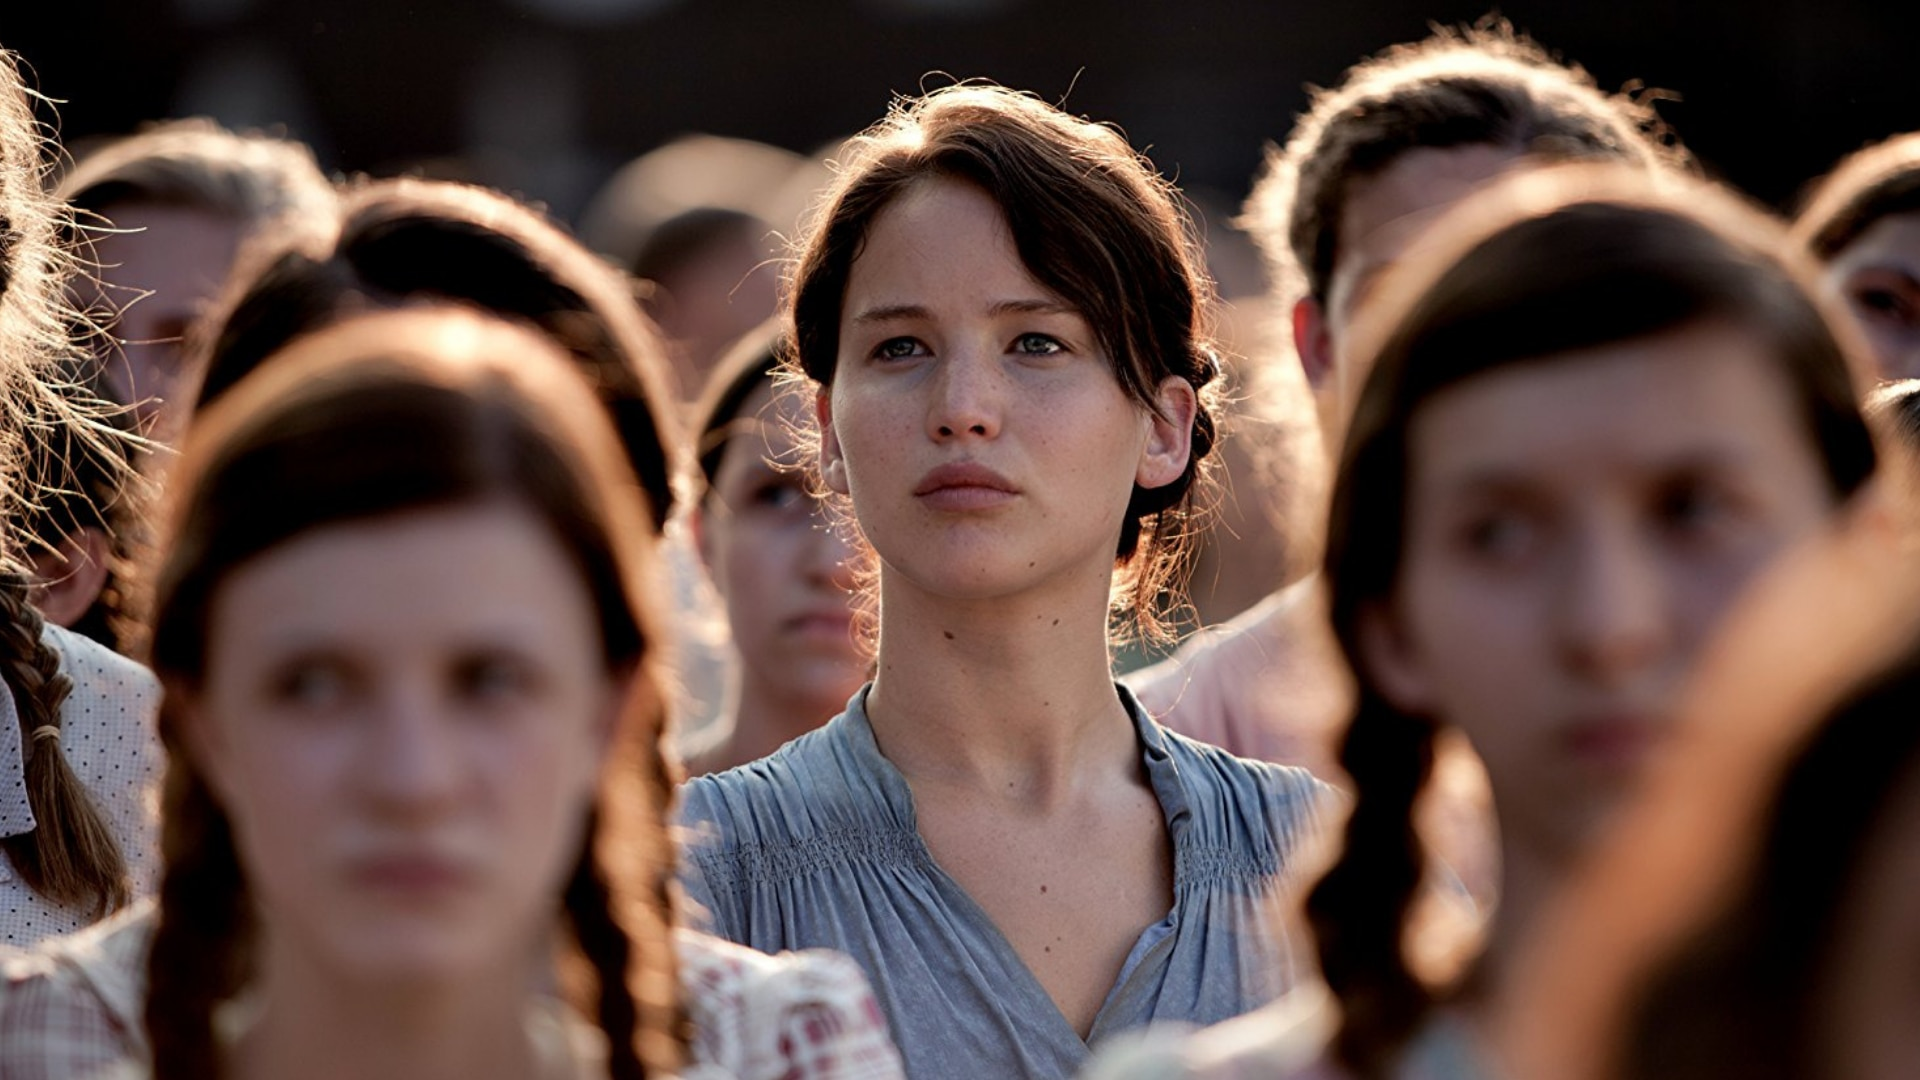 The Hunger Games: The Complete Adventure on Film4